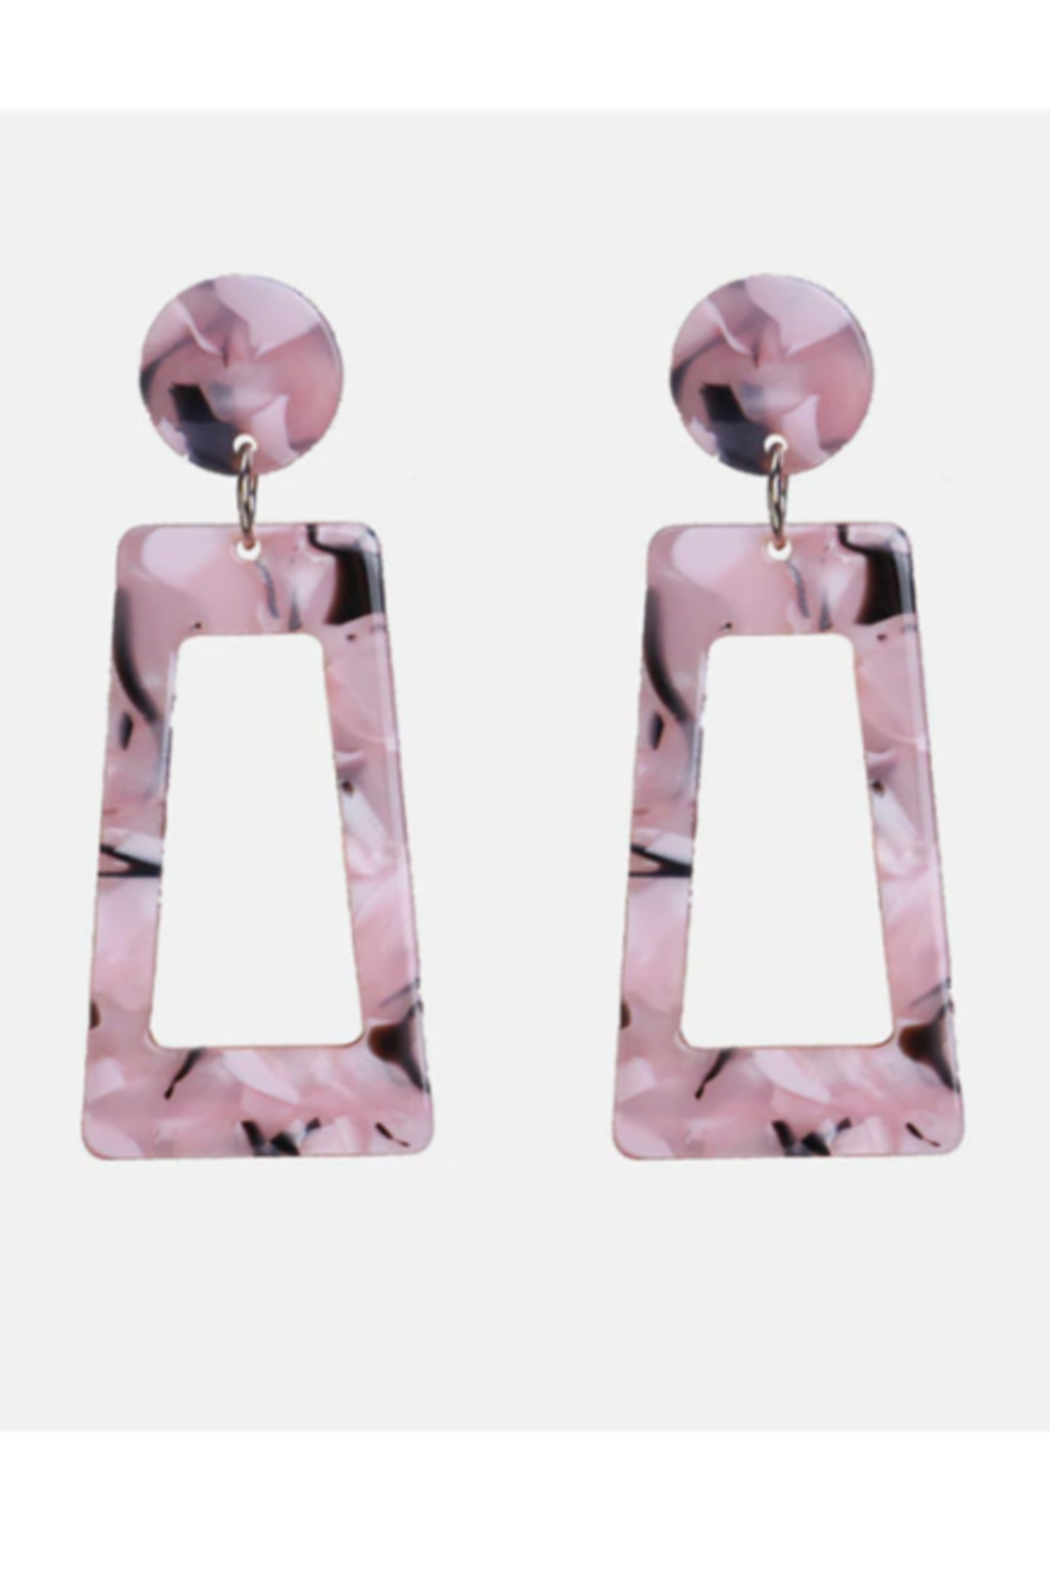 The Birds Nest ROSE MARBLE STATEMENT EARRINGS - Main Image